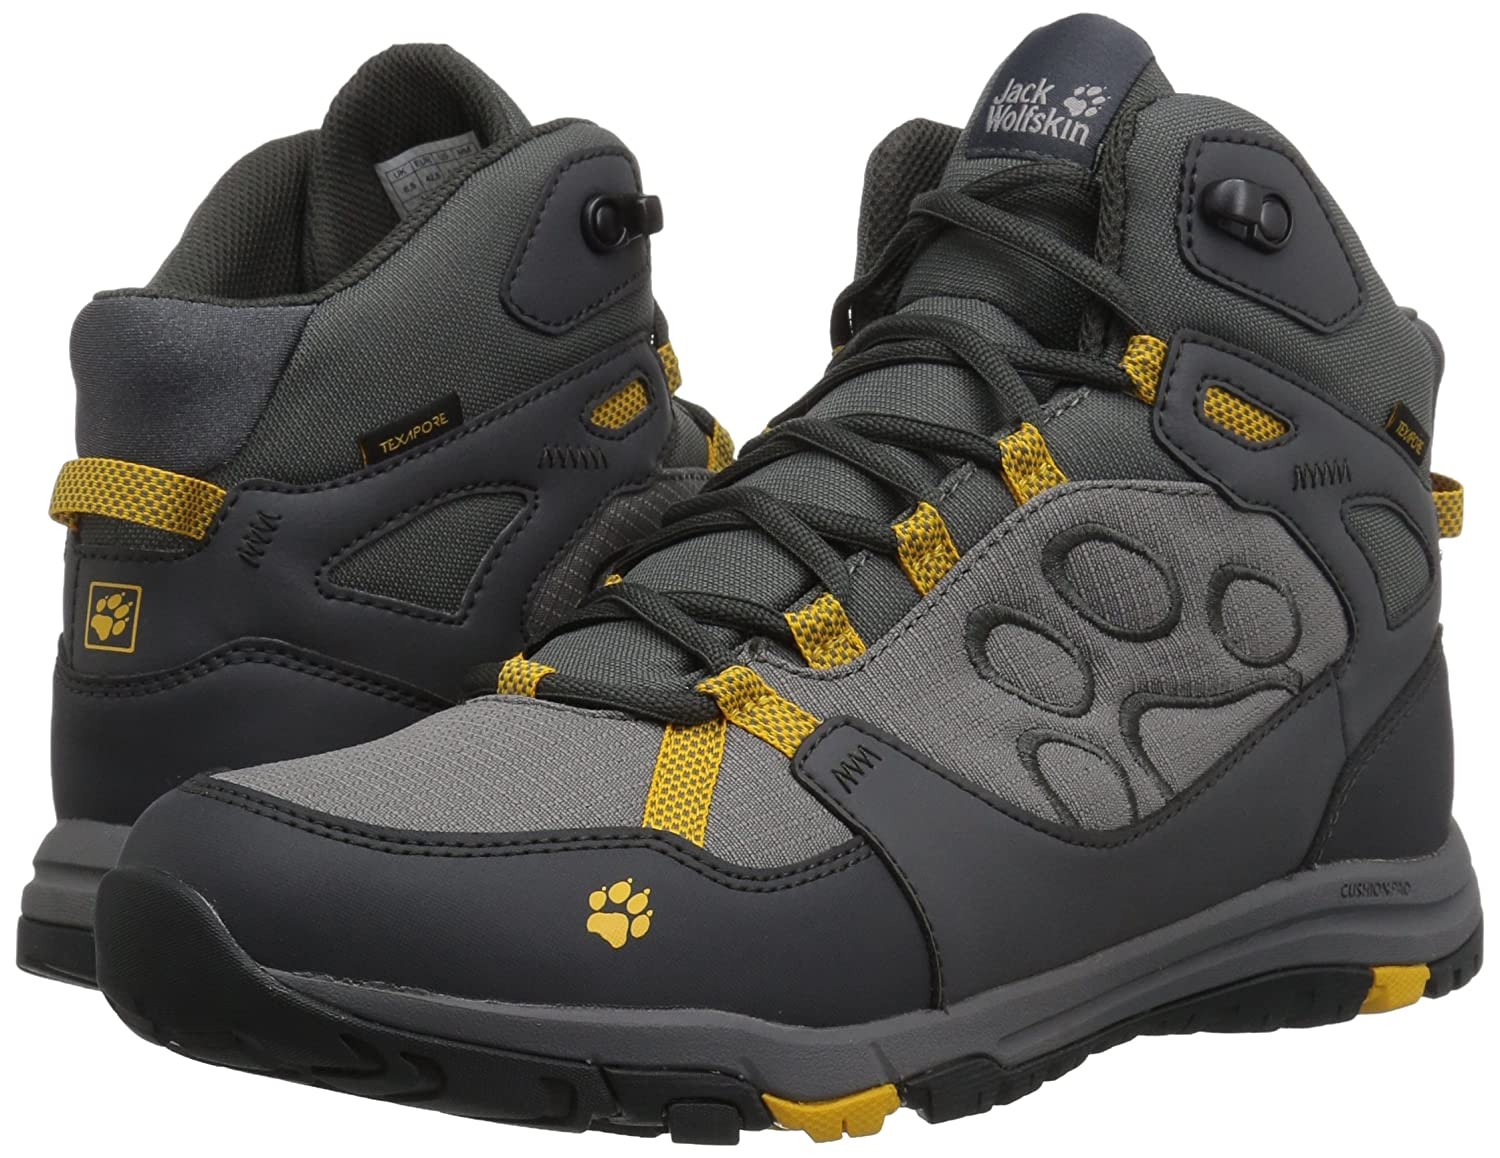 Jack Wolfskin Activate Texapore MID M Hiking Boot Burly Yellow xt US Mens 9 D US